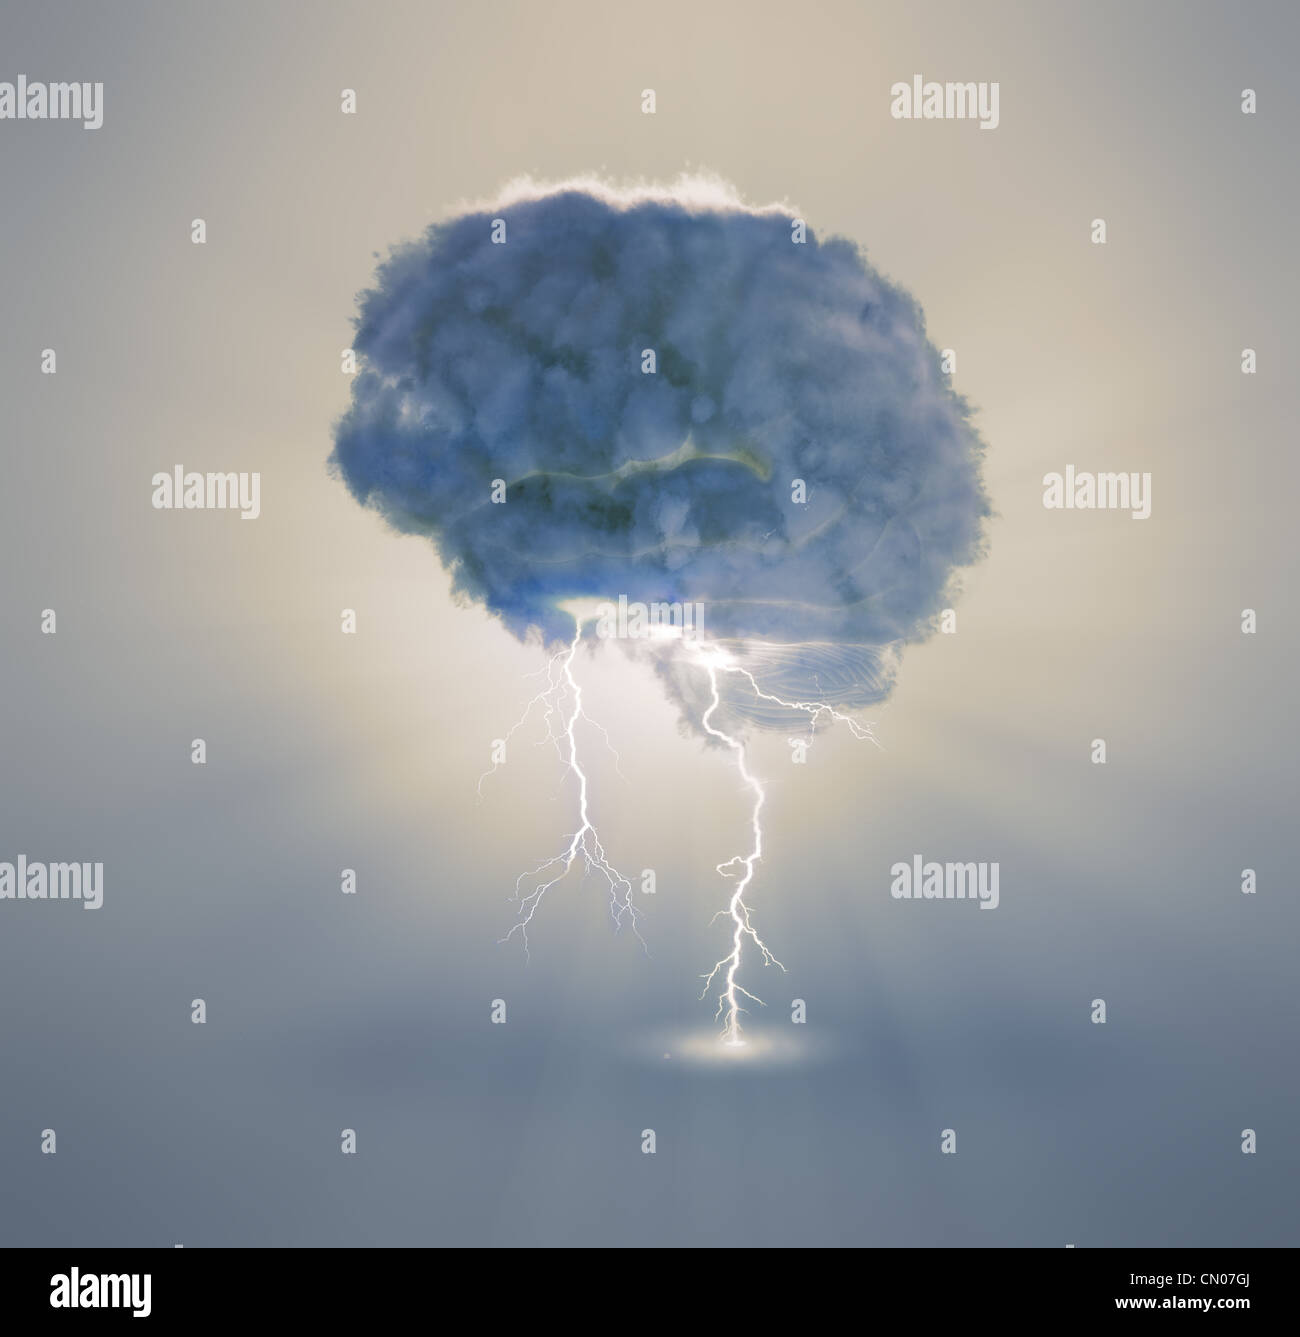 Brainstorming and creativity concept illustration - Stock Image